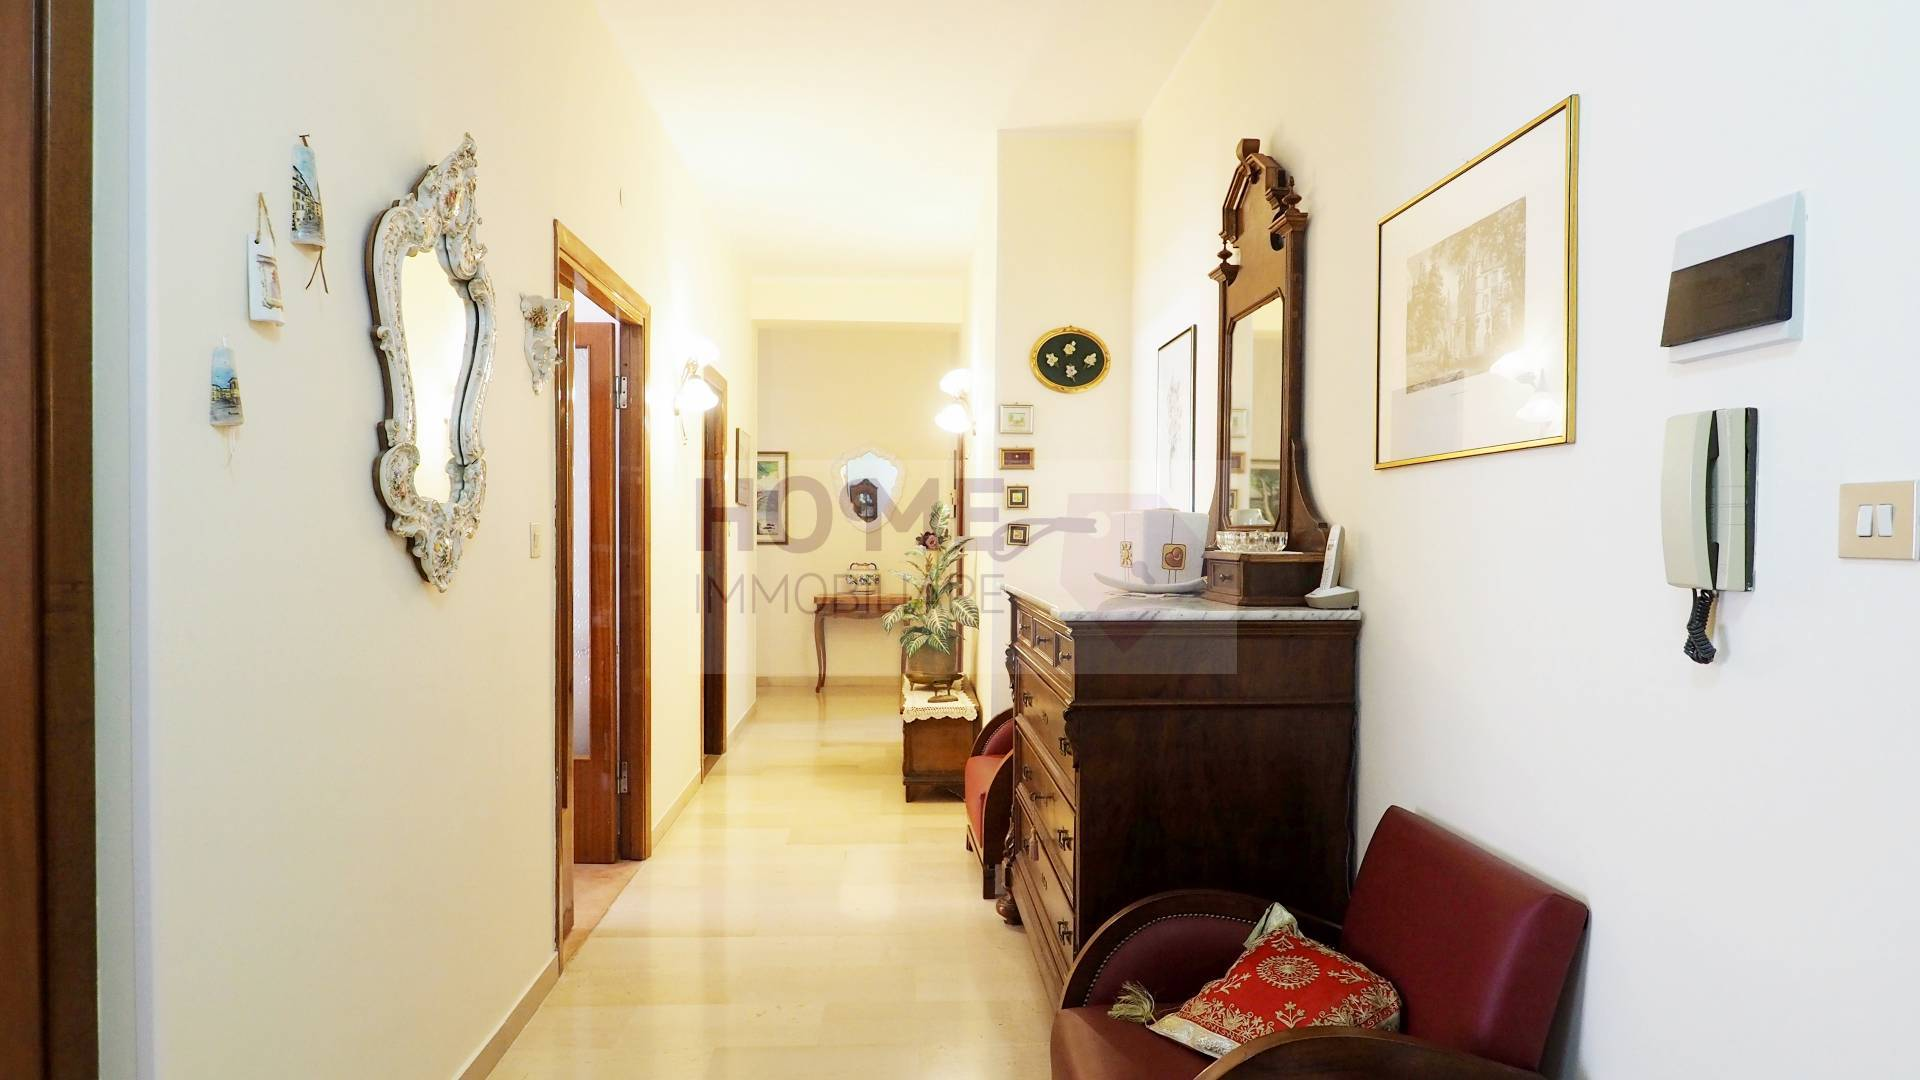 macerata vendita quart: zona san francesco home immobiliare snc